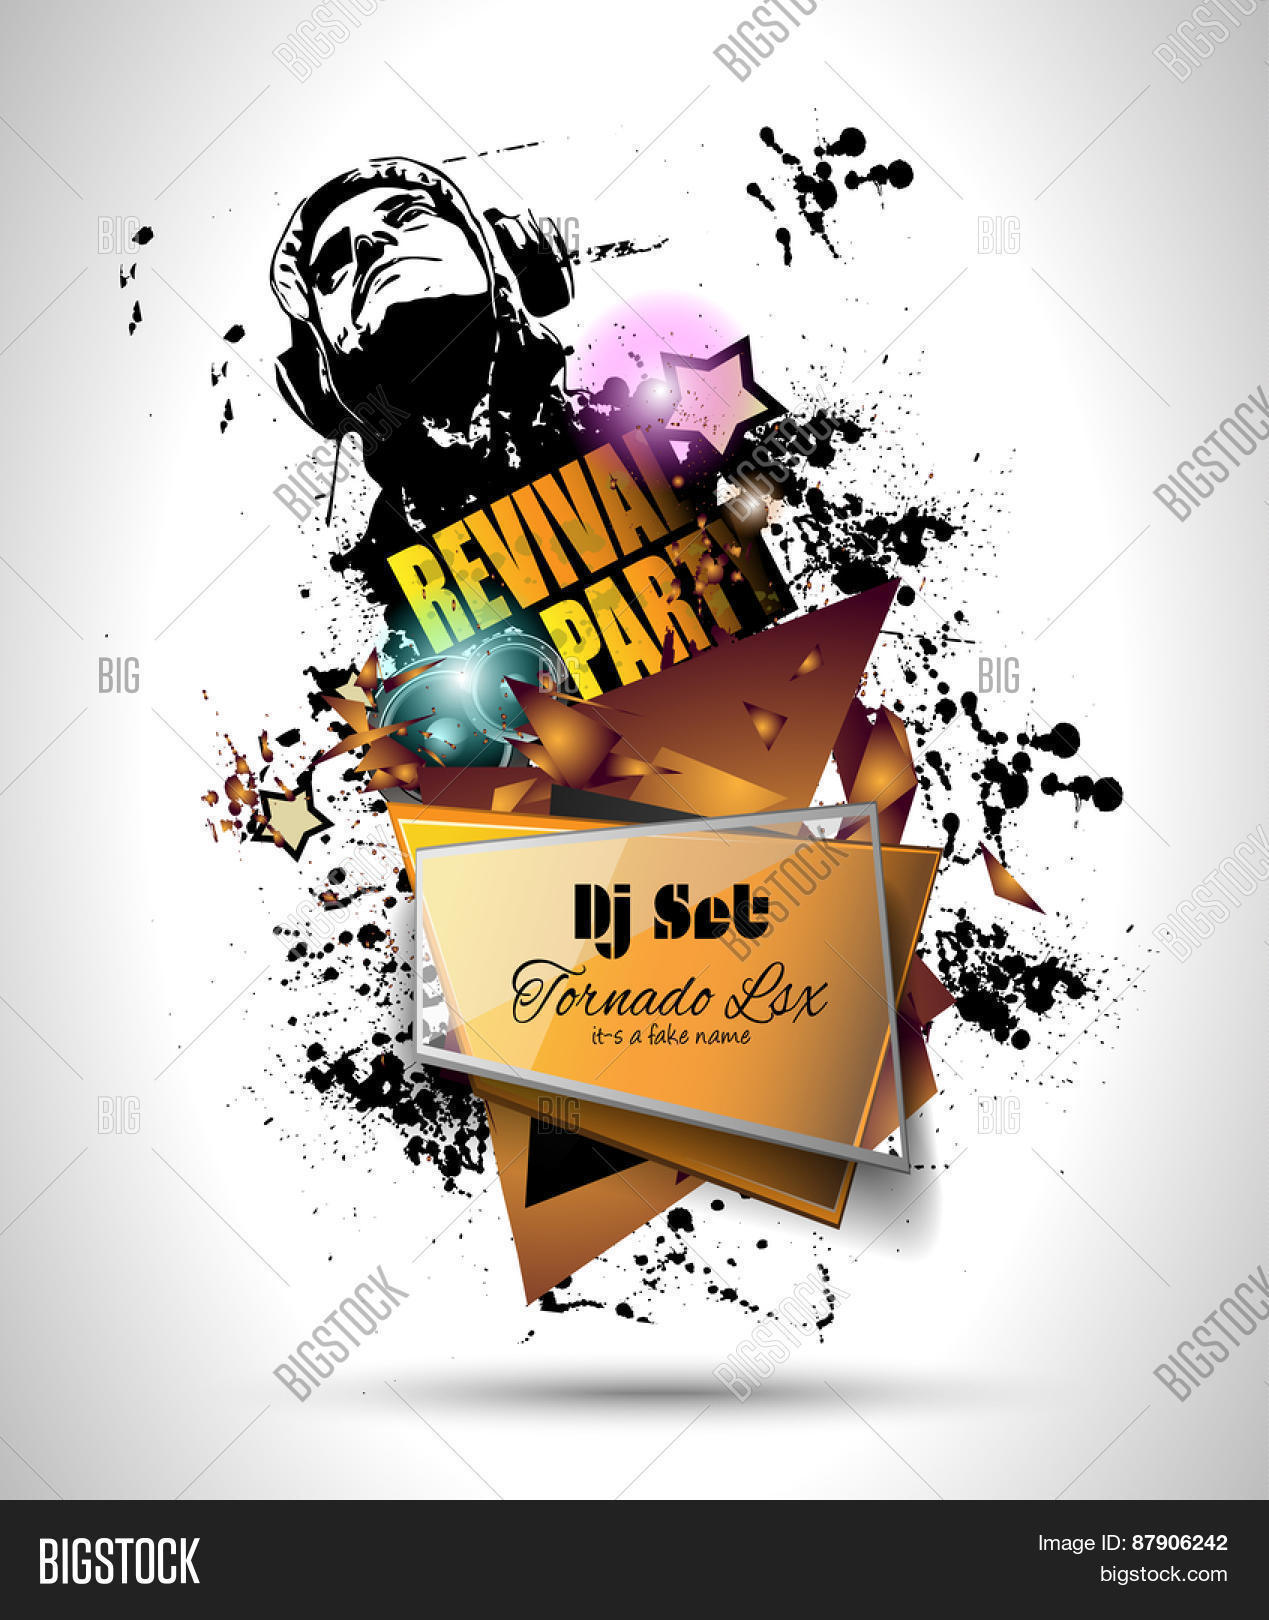 disco night club flyer layout dj shape and music themed disco night club flyer layout dj shape and music themed elements to use for event